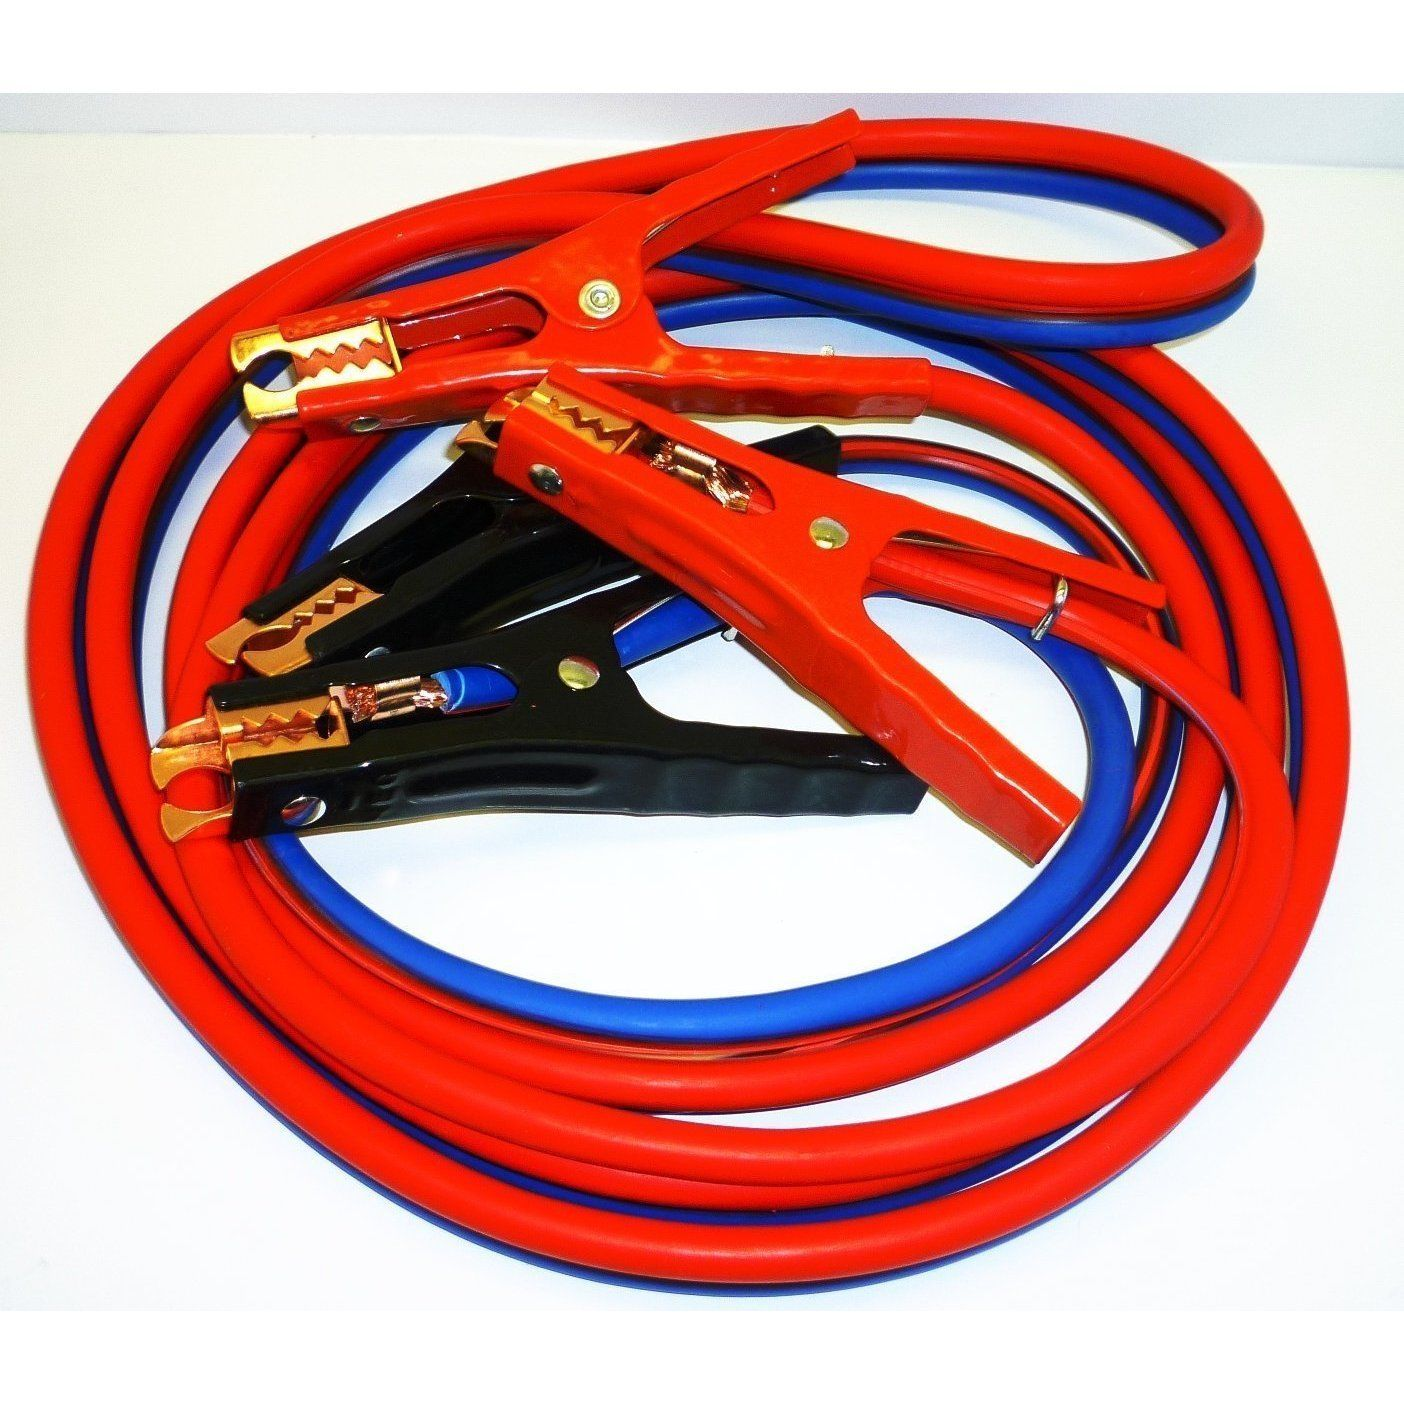 12 Foot Premium Heavy Duty No Tangle 500 Amp 6 Gauge Jumper Booster Cables Car Buying Tips